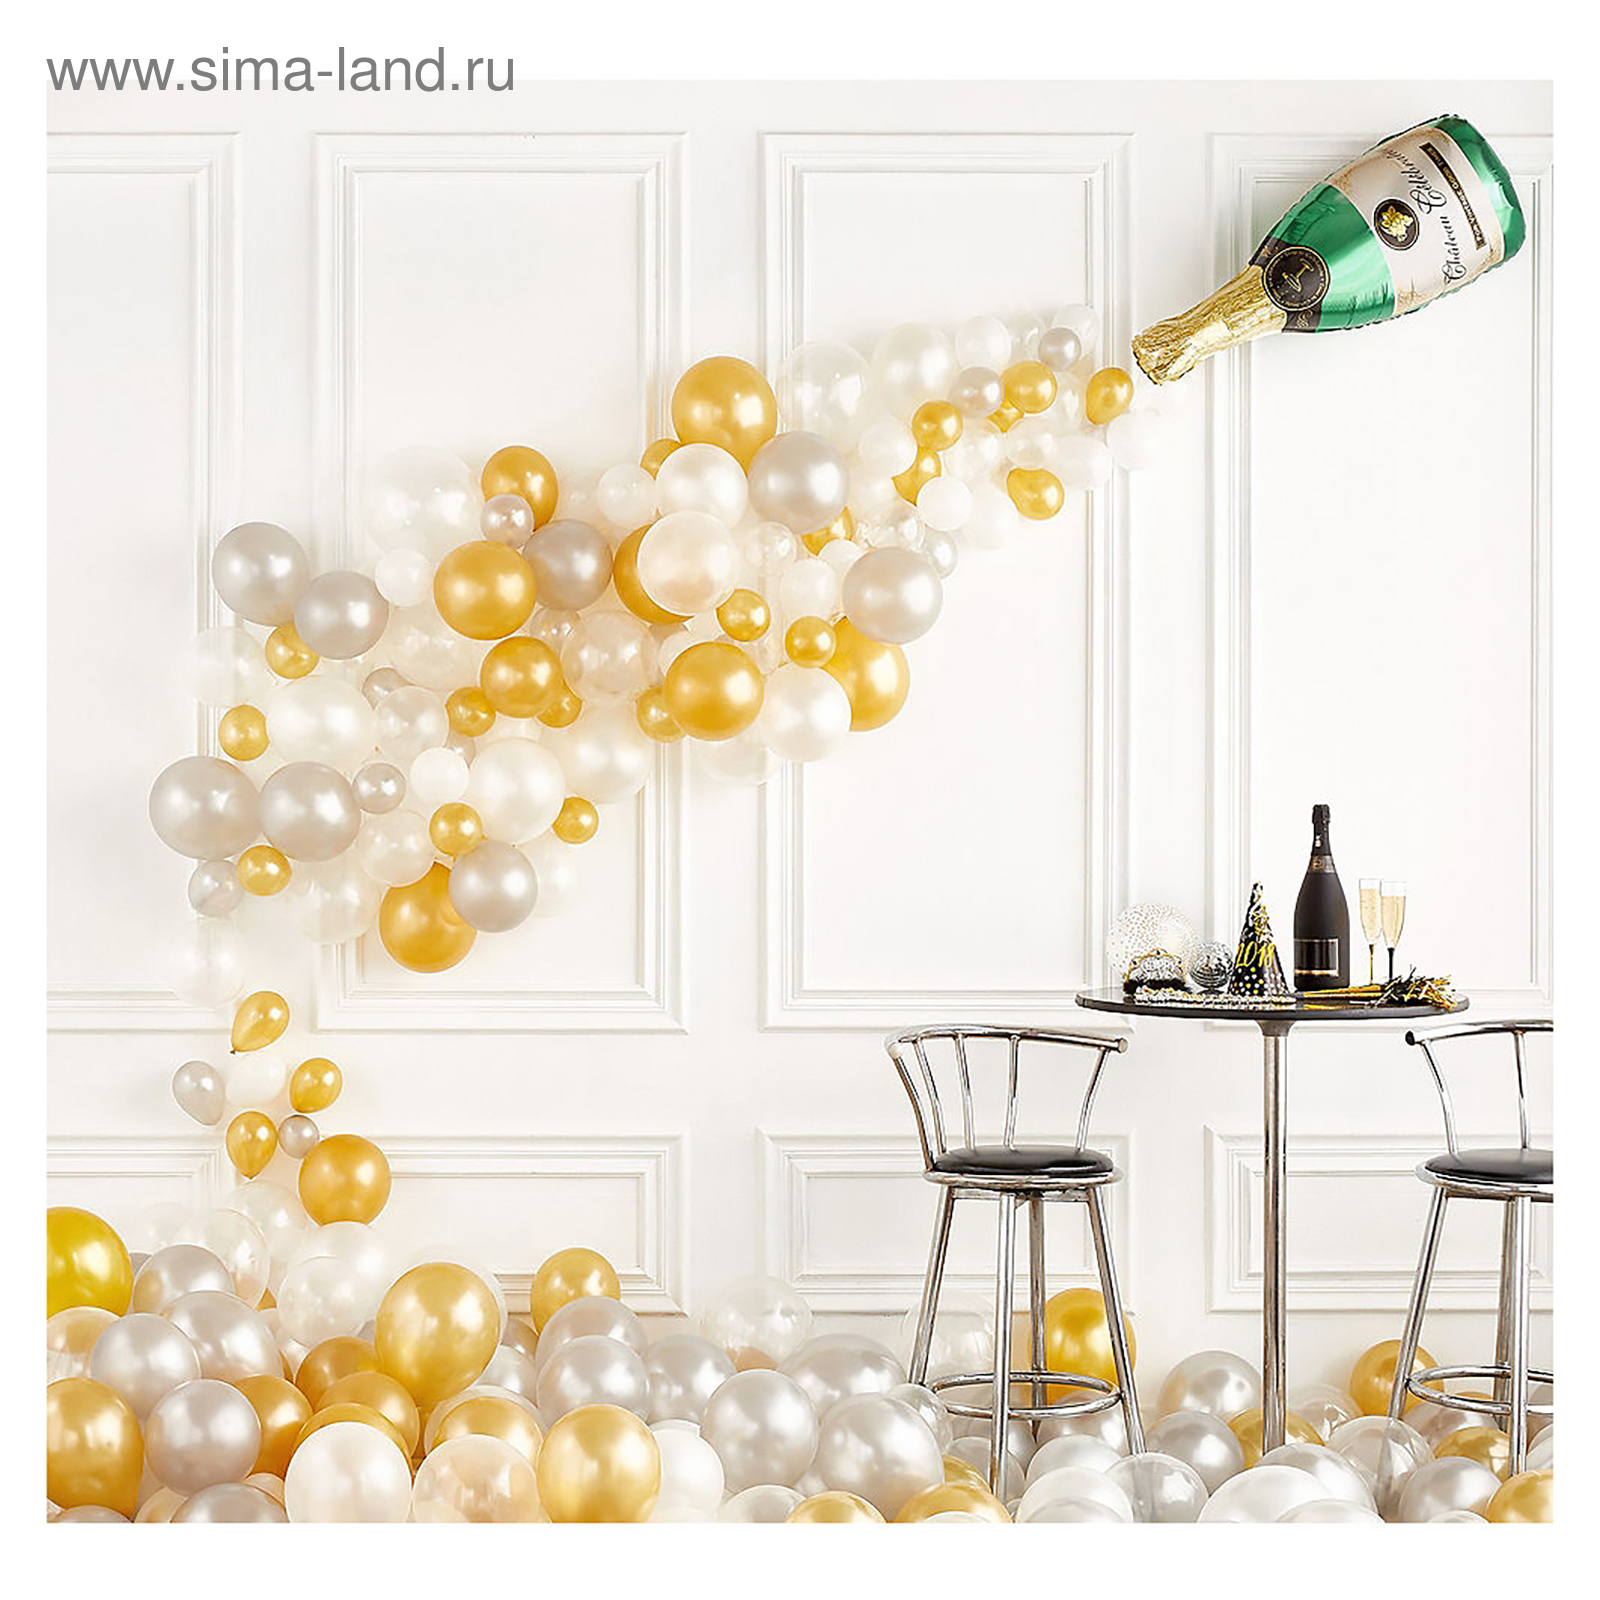 new years eve party decor ideas - 1000×1000